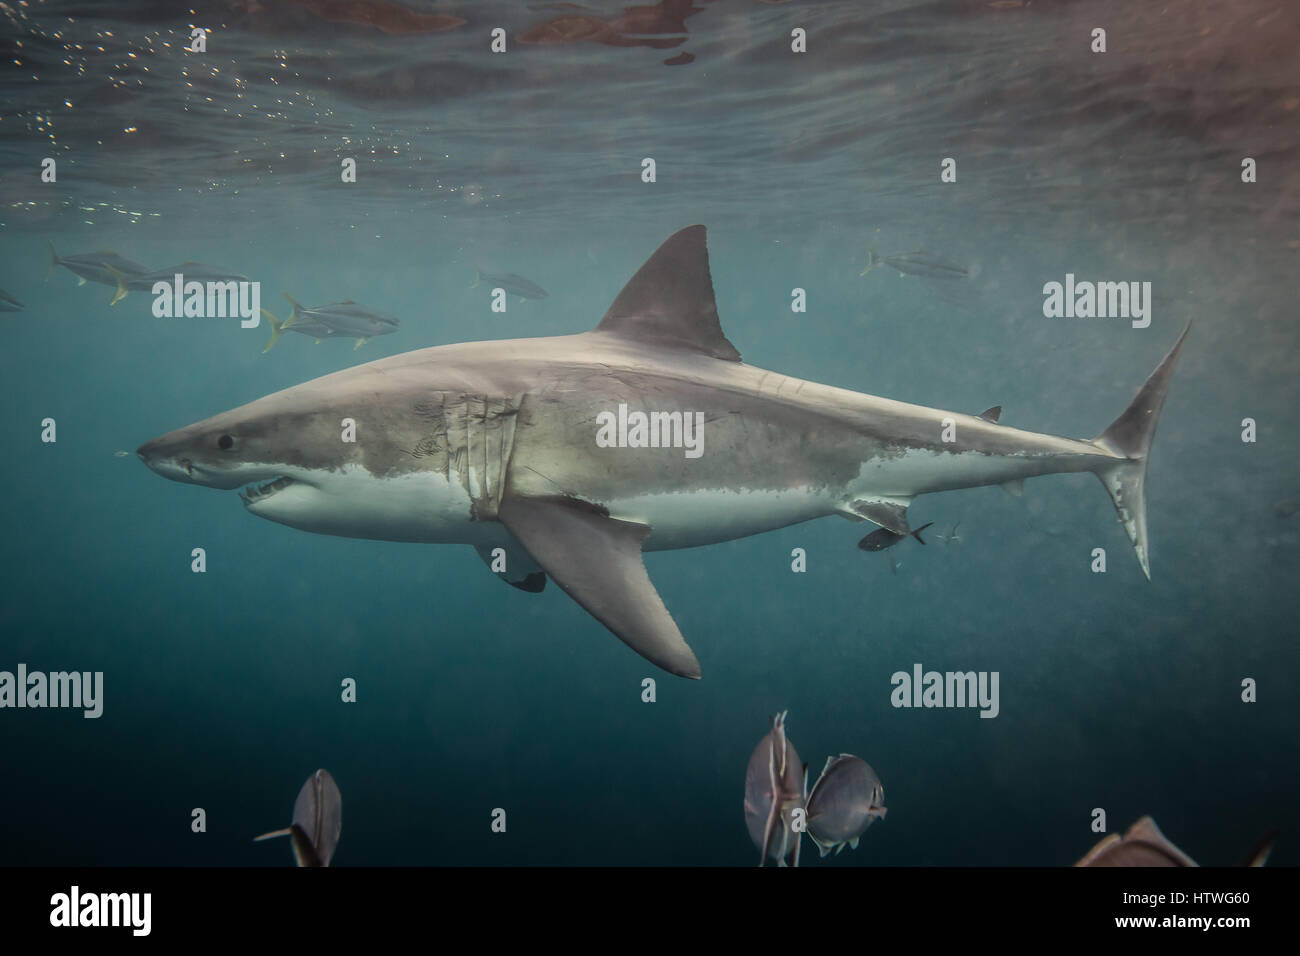 Grand requin blanc (Carcharodon carcharias) Photo Stock